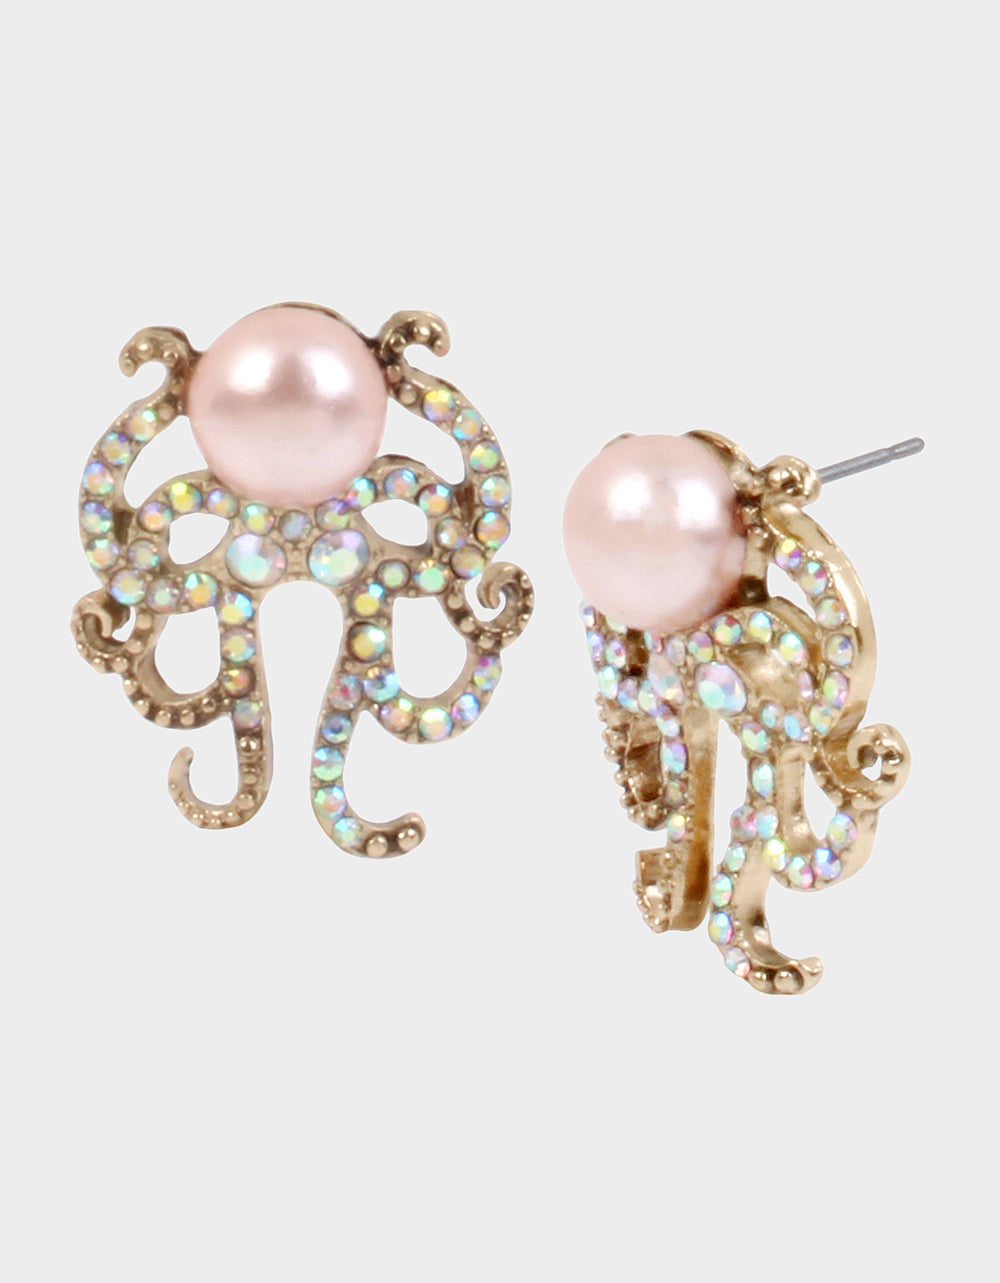 SURFMAID OCTOPUS EARRINGS PINK - JEWELRY - Betsey Johnson